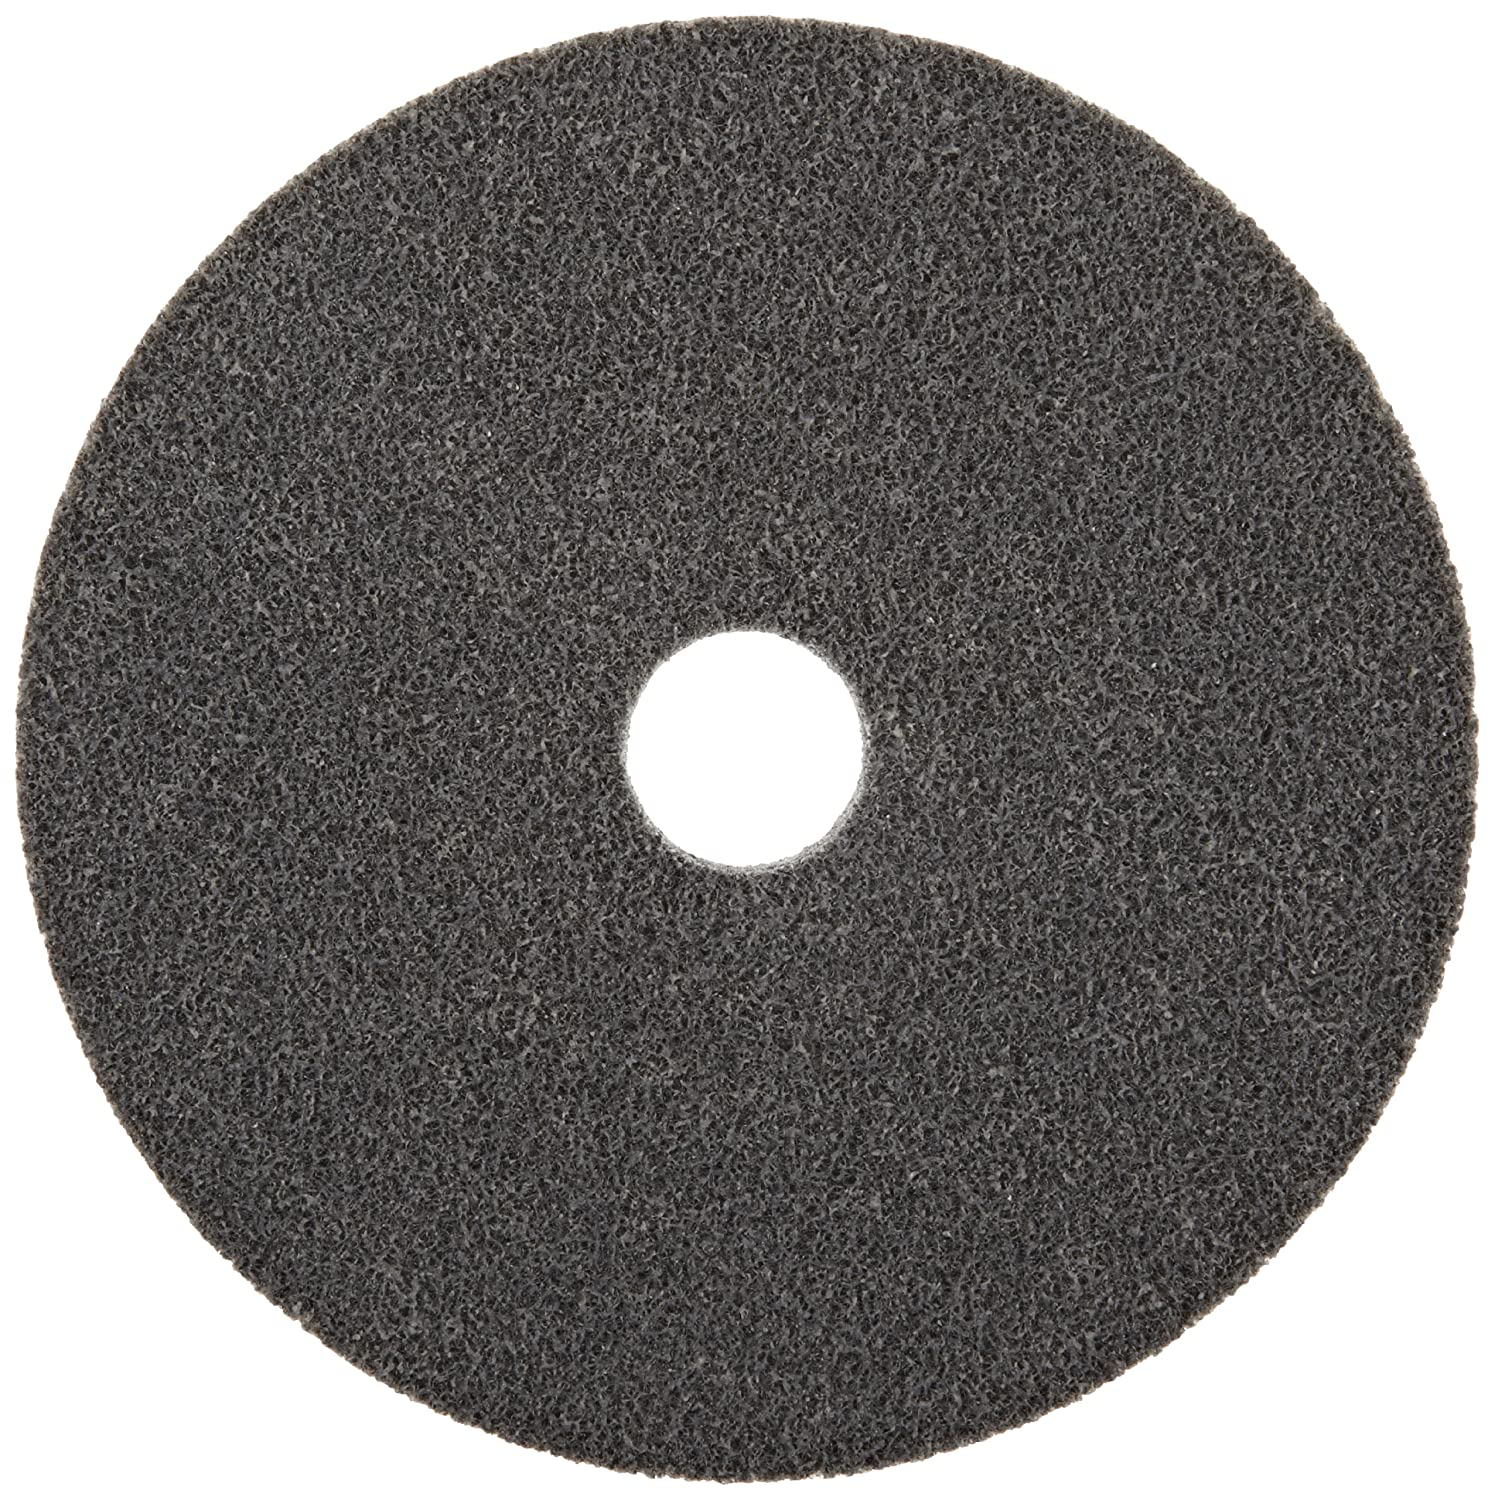 Silicon Carbide 1 Arbor Medium Grit Pack of 4 Scotch-Brite EXL Unitized Wheel 6 Diameter 1 Arbor 3MIA9 XL-UW 6 Diameter 4500 rpm